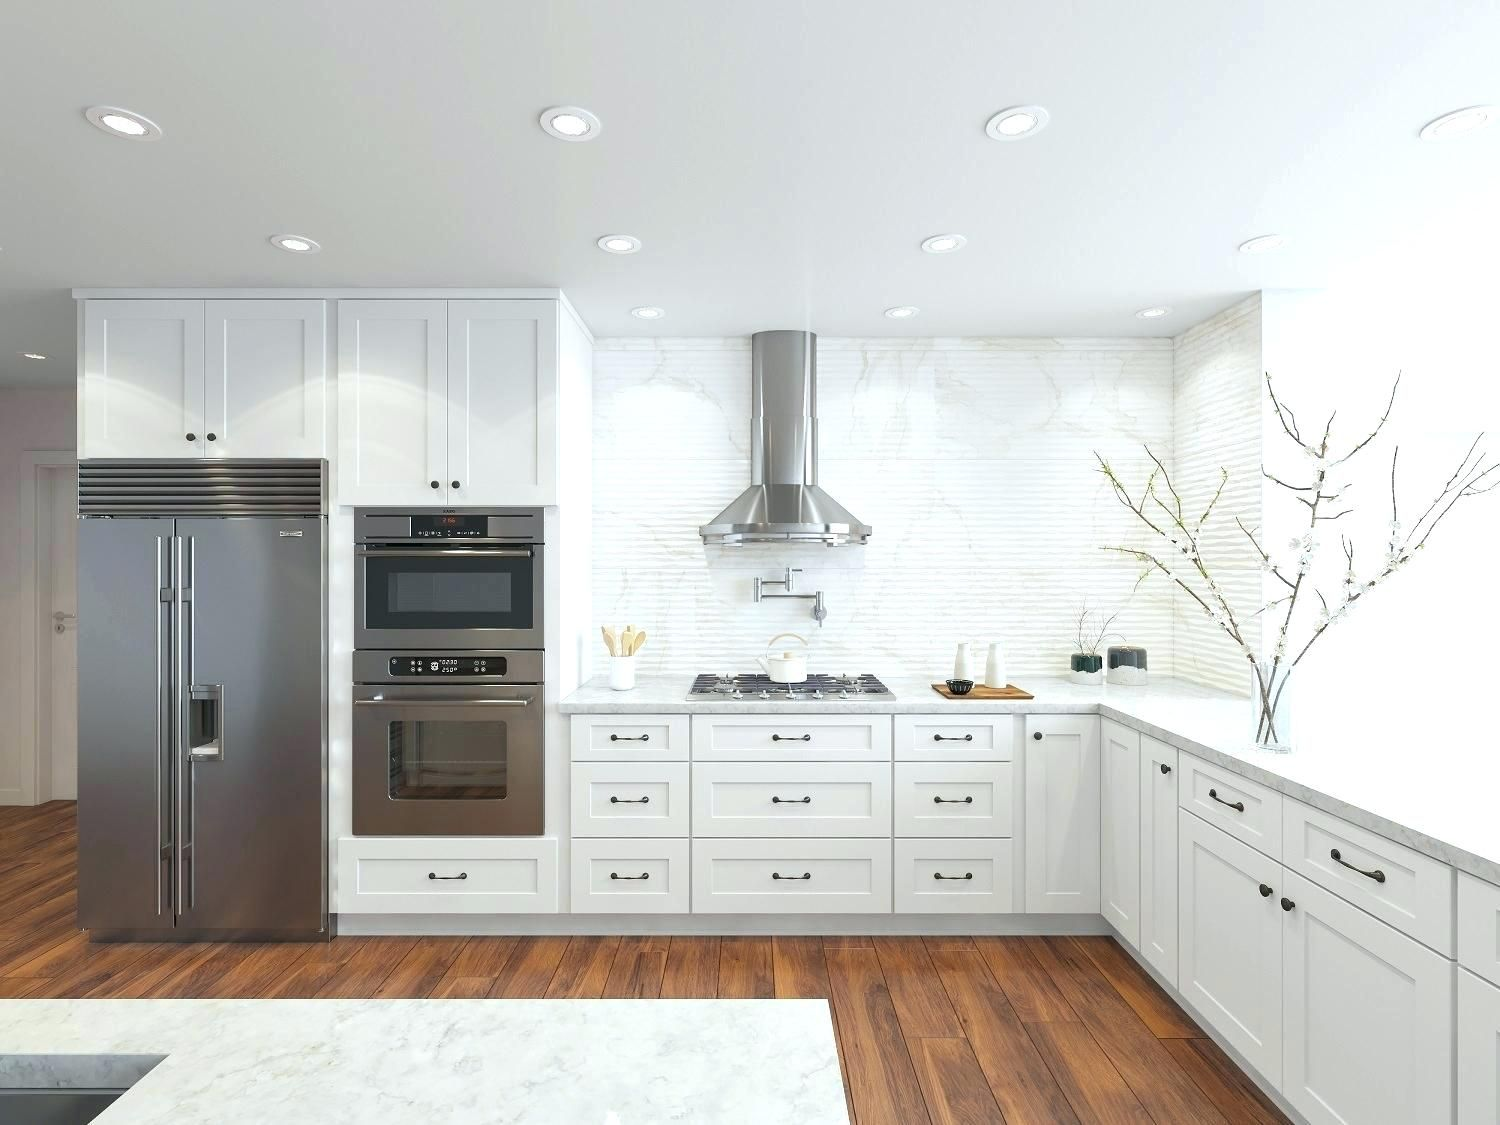 White Kitchen Cabinets Lowes Timeless And Classic These Are The Most Popu White Shaker Kitchen Cabinets Shaker Style Kitchen Cabinets Kitchen Cabinet Styles